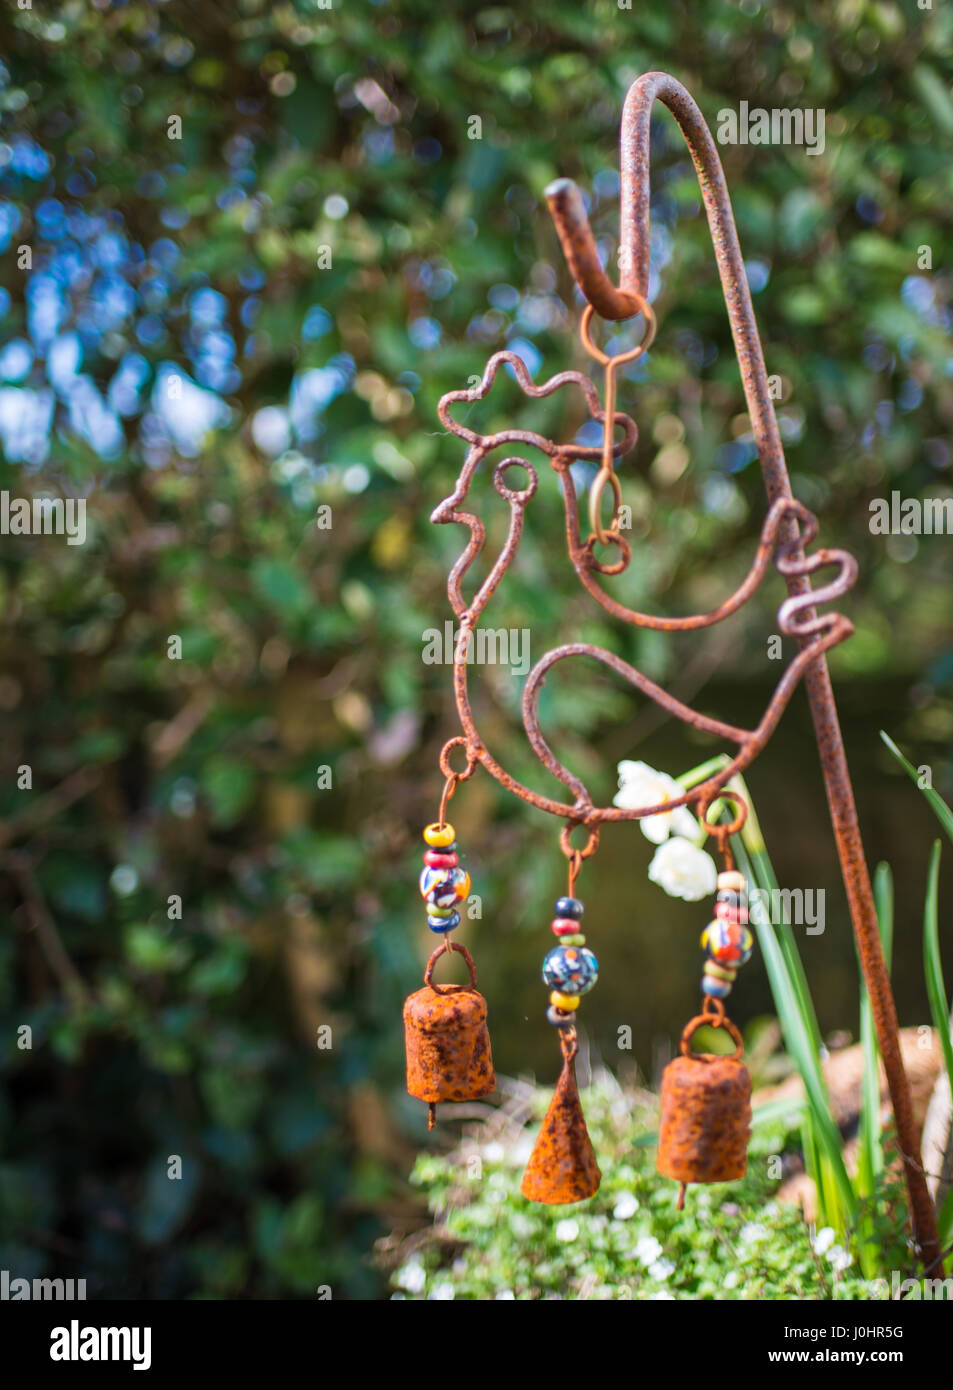 Chicken shaped wind-chime garden ornament - Stock Image